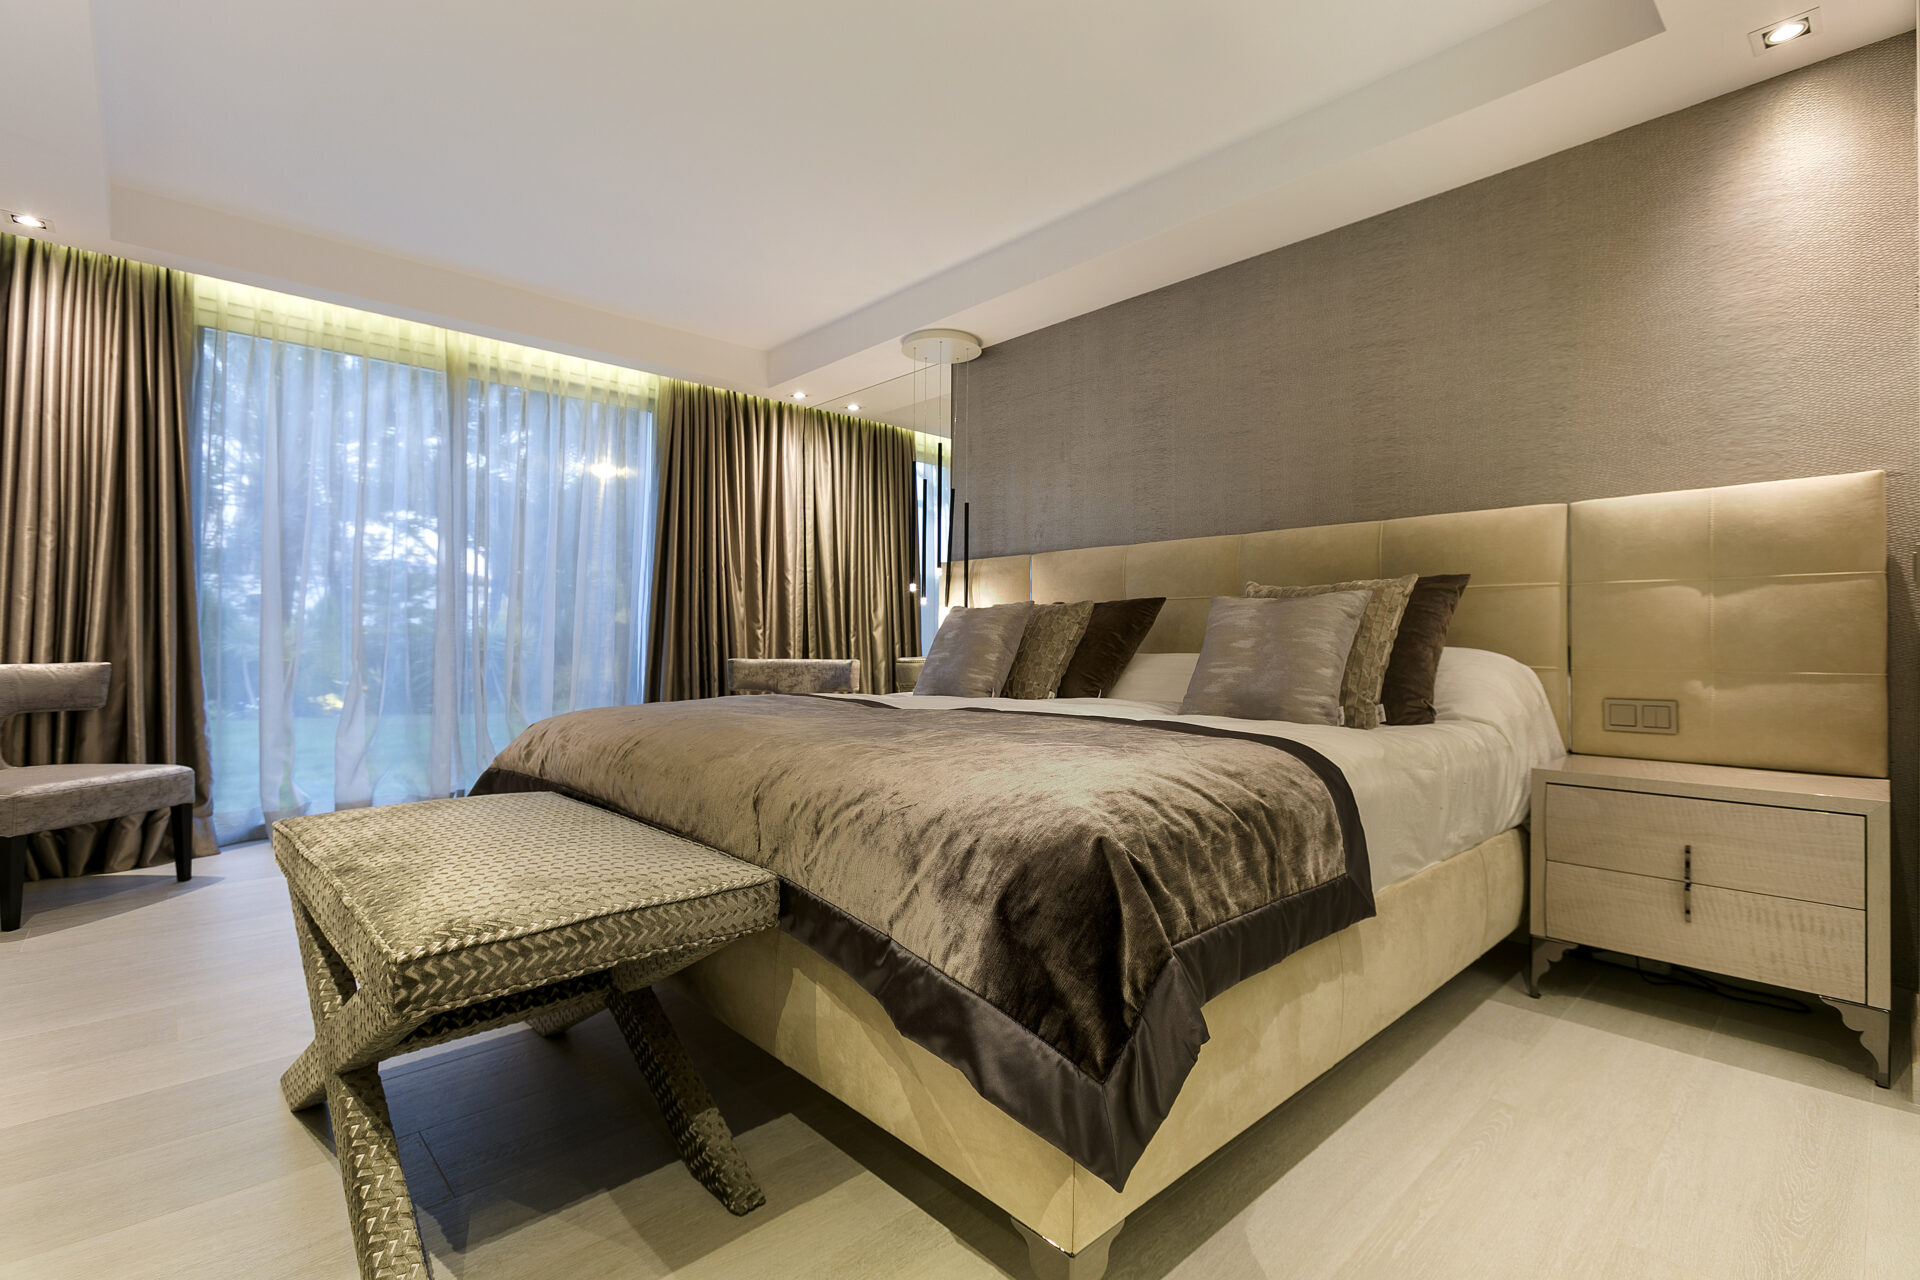 Luxury Holiday Home bedroom